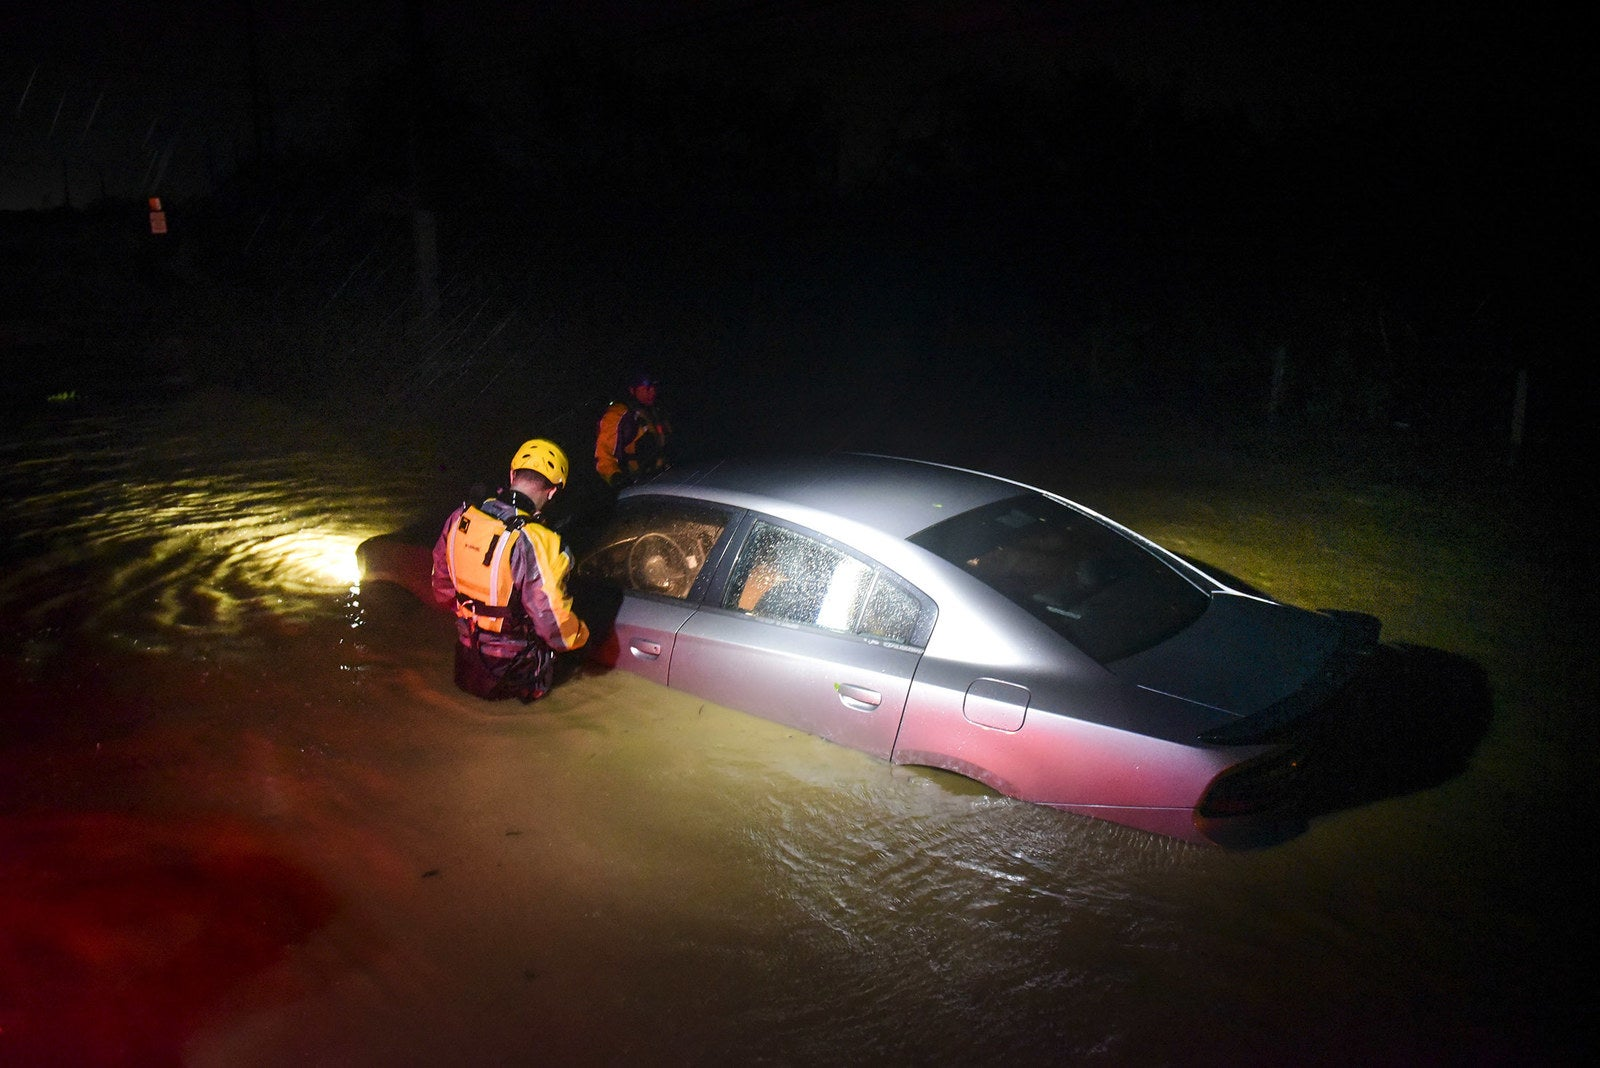 Rescue staff from the Municipal Emergency Management Agency investigate an empty flooded car during the passage of Hurricane Irma through the northeastern part of the island in Fajardo, Puerto Rico.